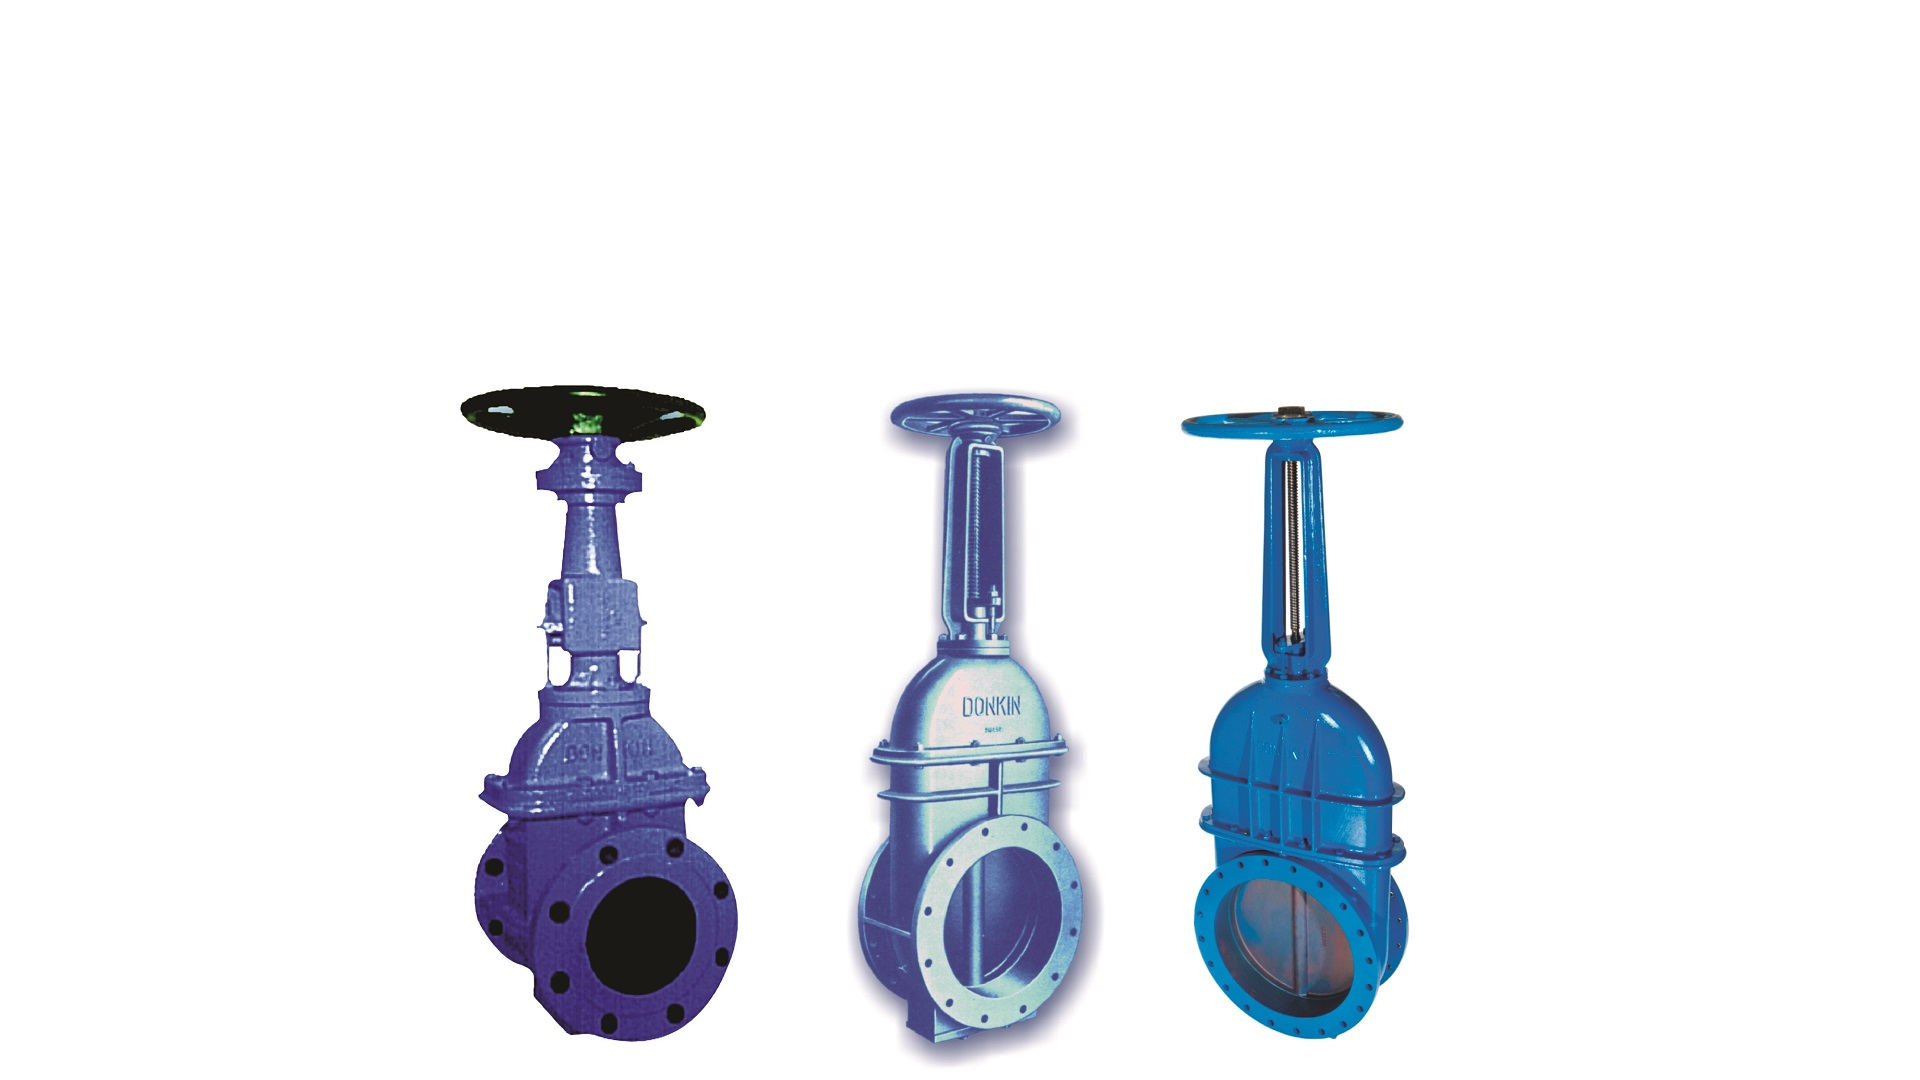 AVK Donkin gas coke oven gate valves